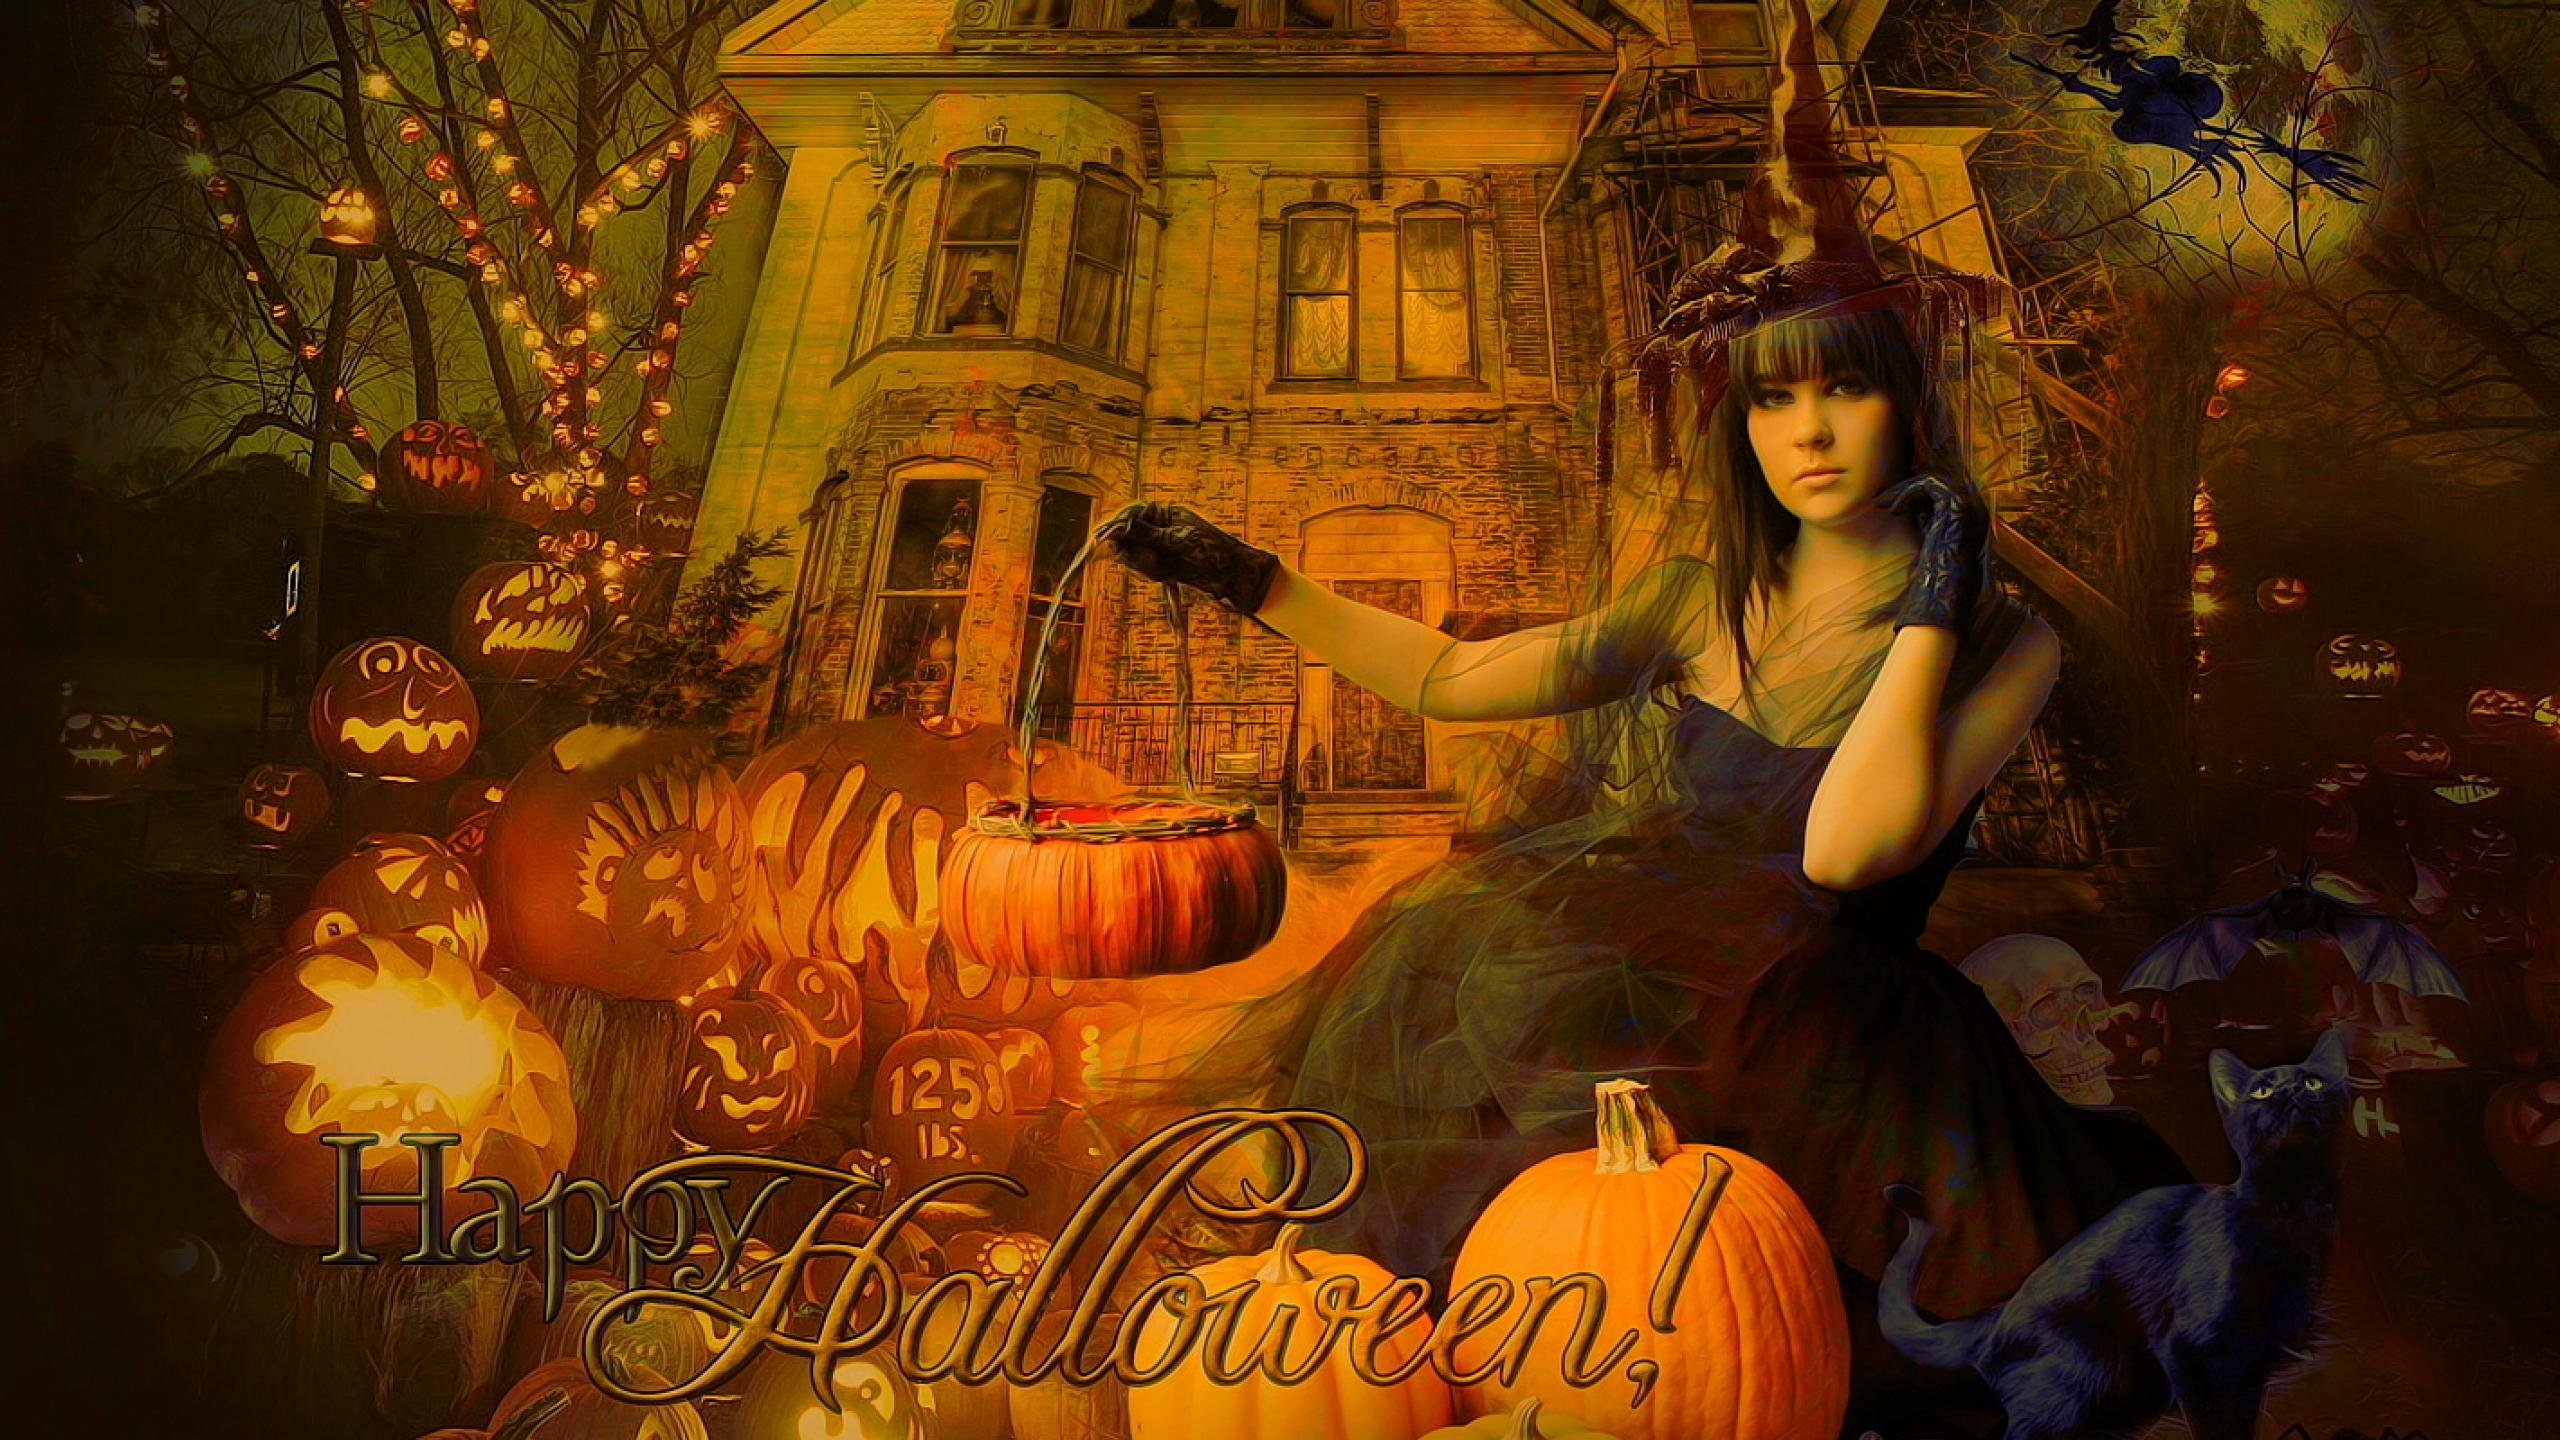 Cozy Fall Hd Wallpaper Halloween Gothic Witch Wallpaper 2560x1440 479862